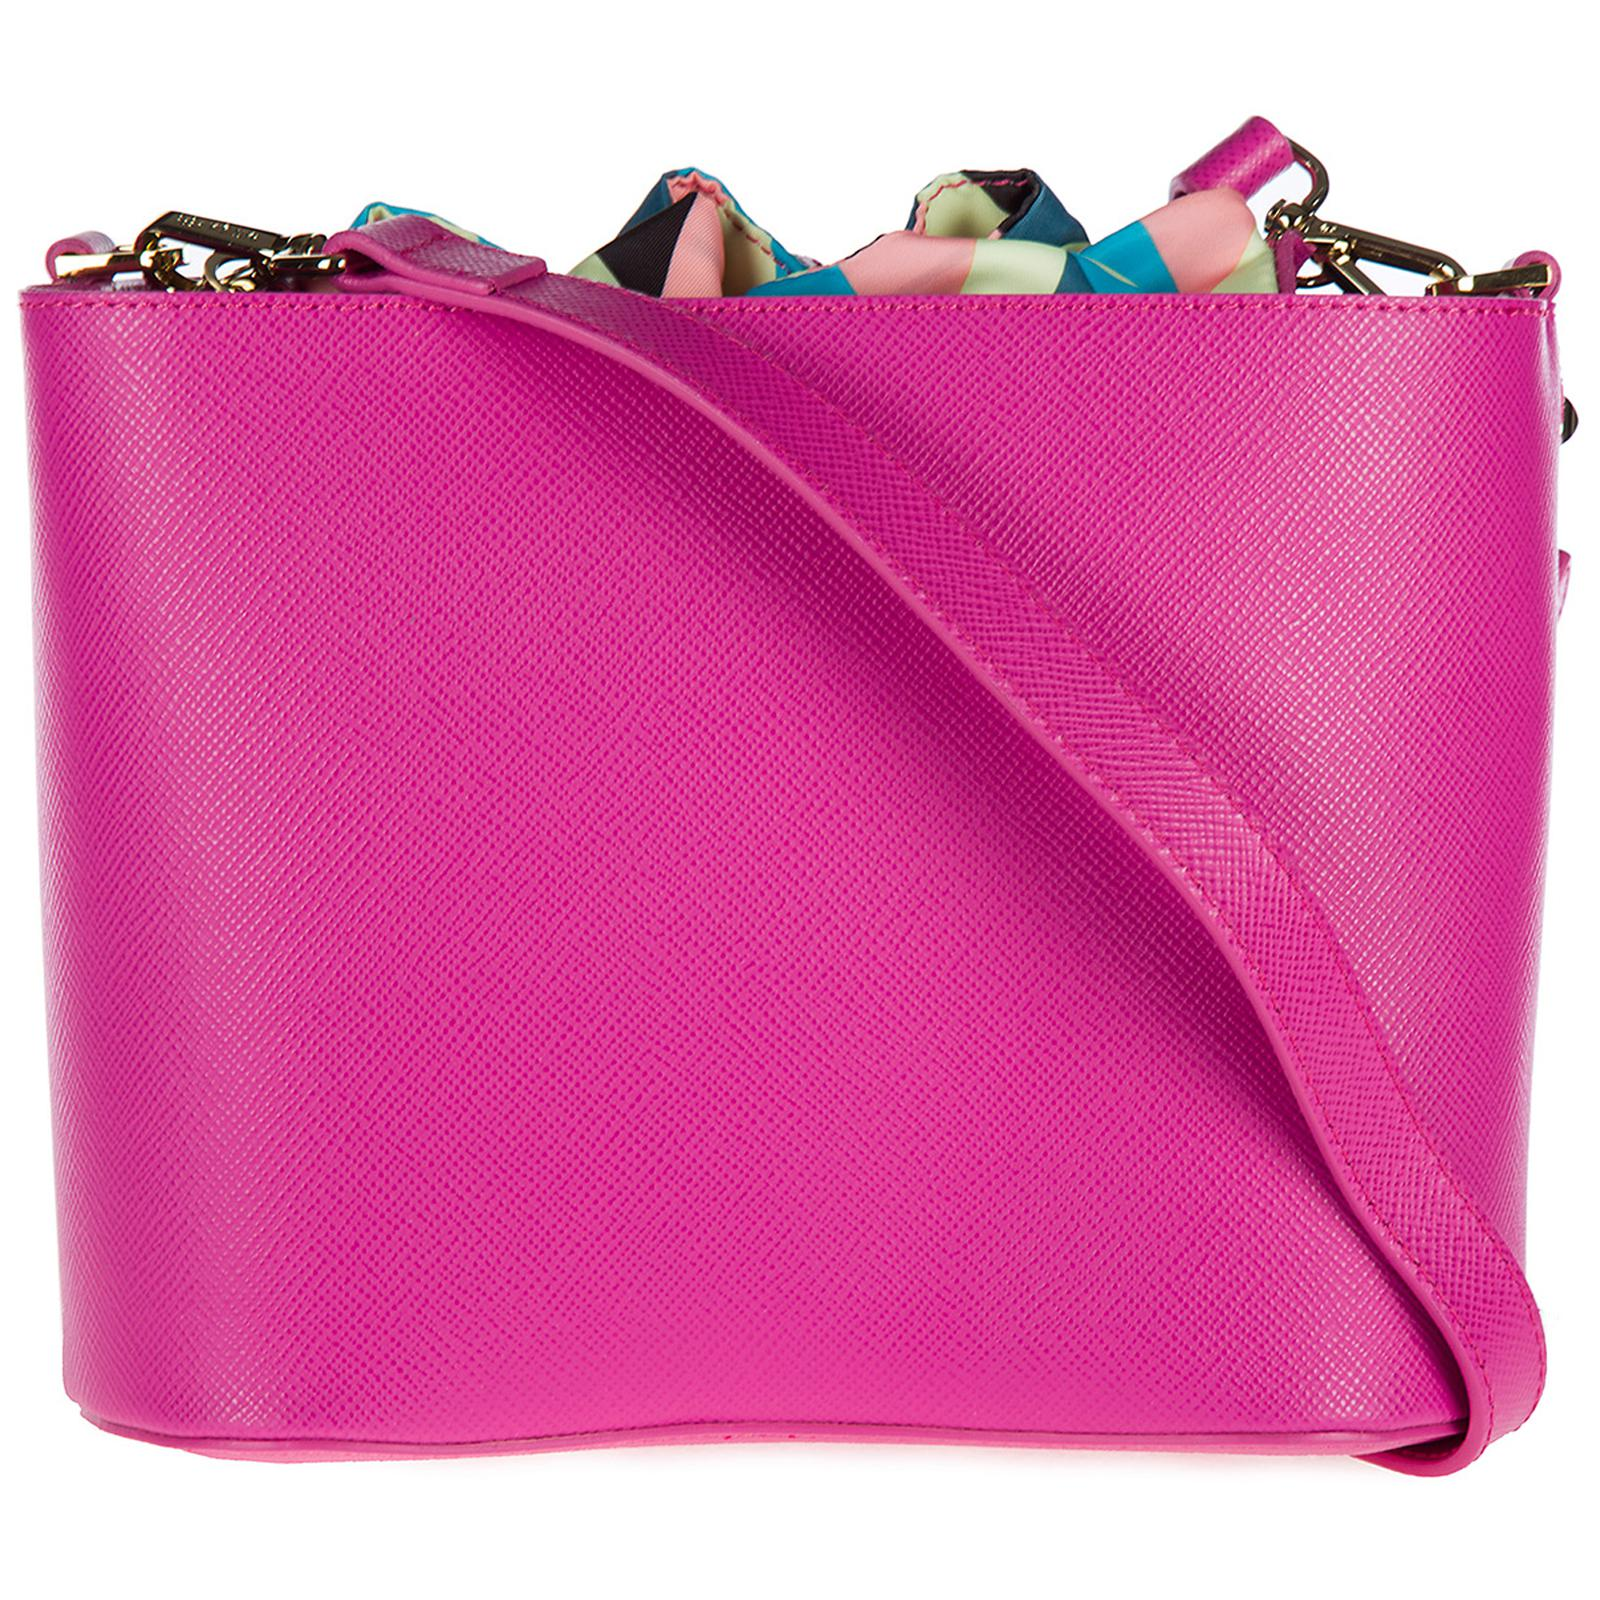 b488bf3a5d Patrizia Pepe Cross-body Messenger Shoulder Bag in Pink - Lyst